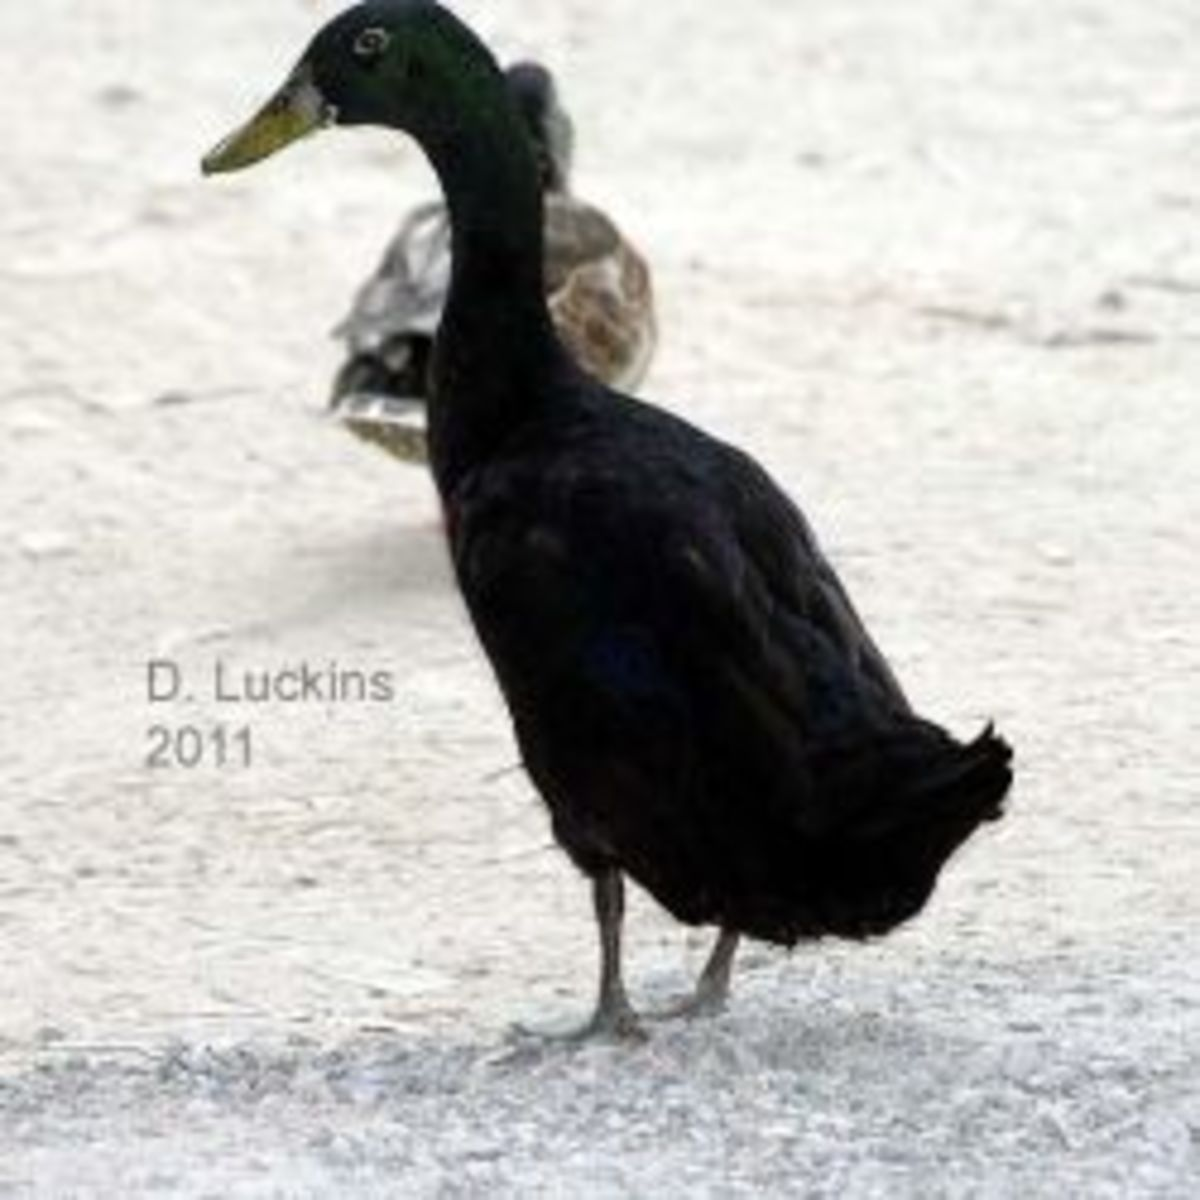 A black Indian runner duck, which will be discussed below.